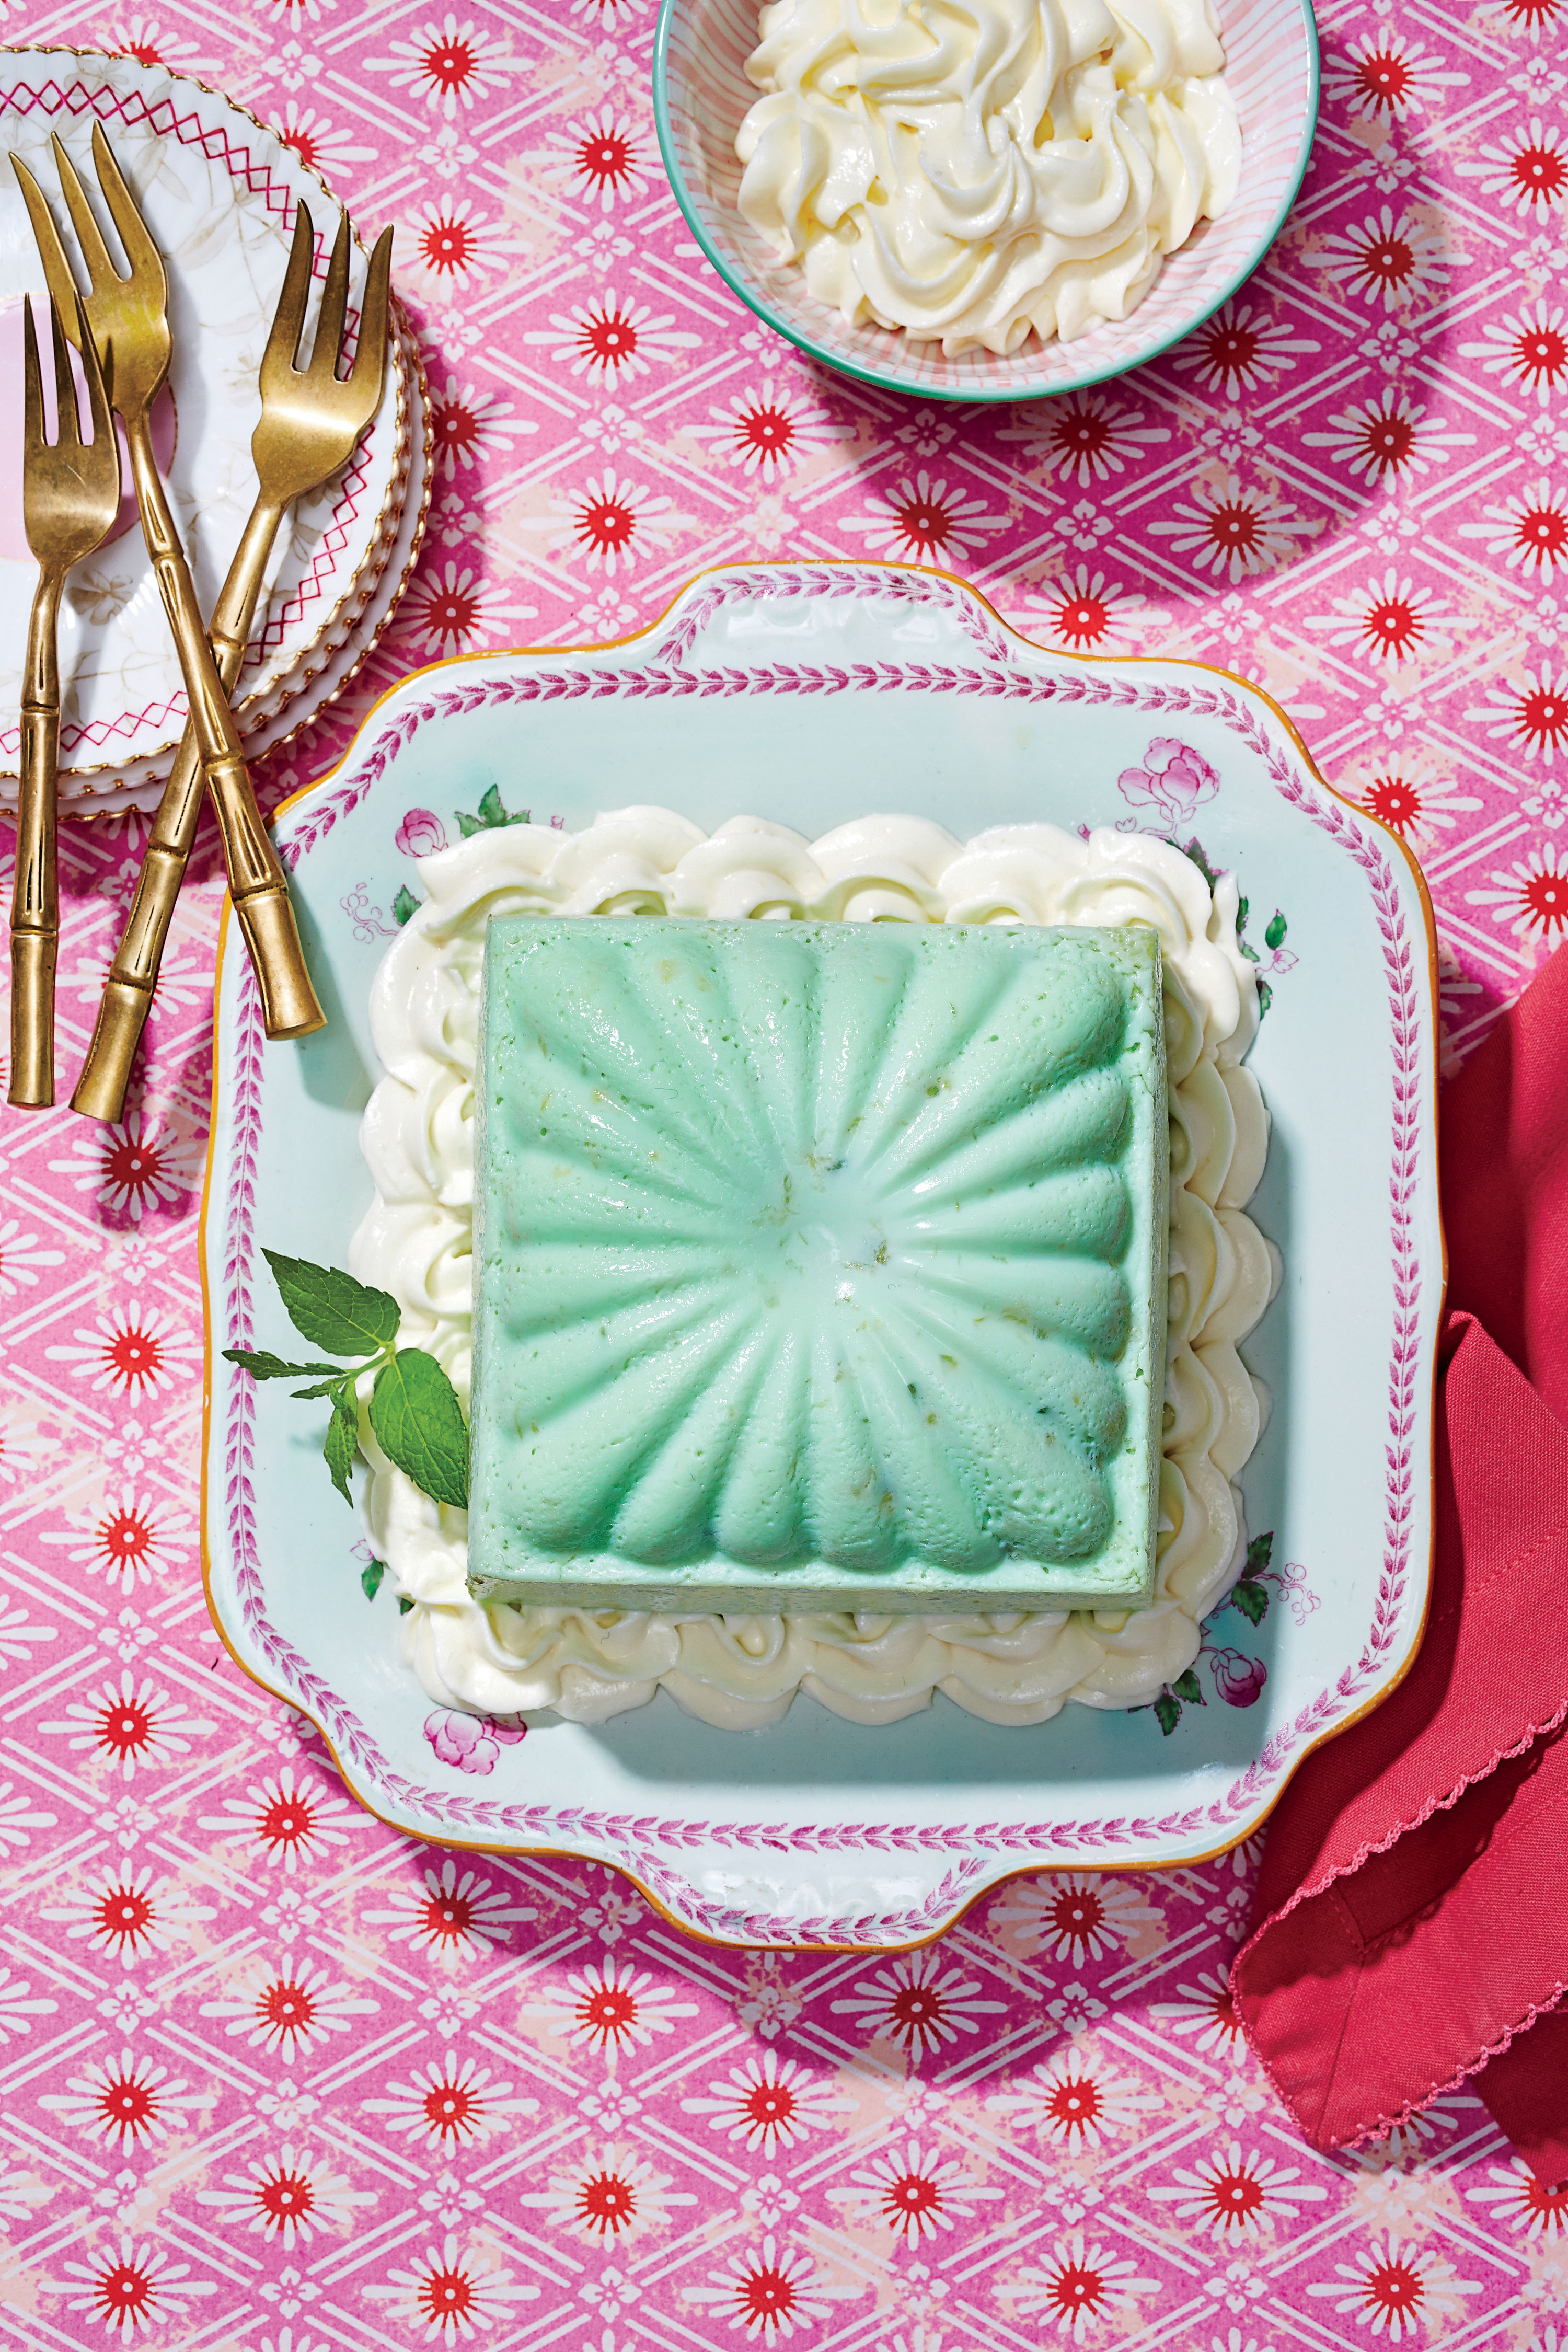 This Gelatin Mold Is My Grandmother's Go-To Easter Recipe